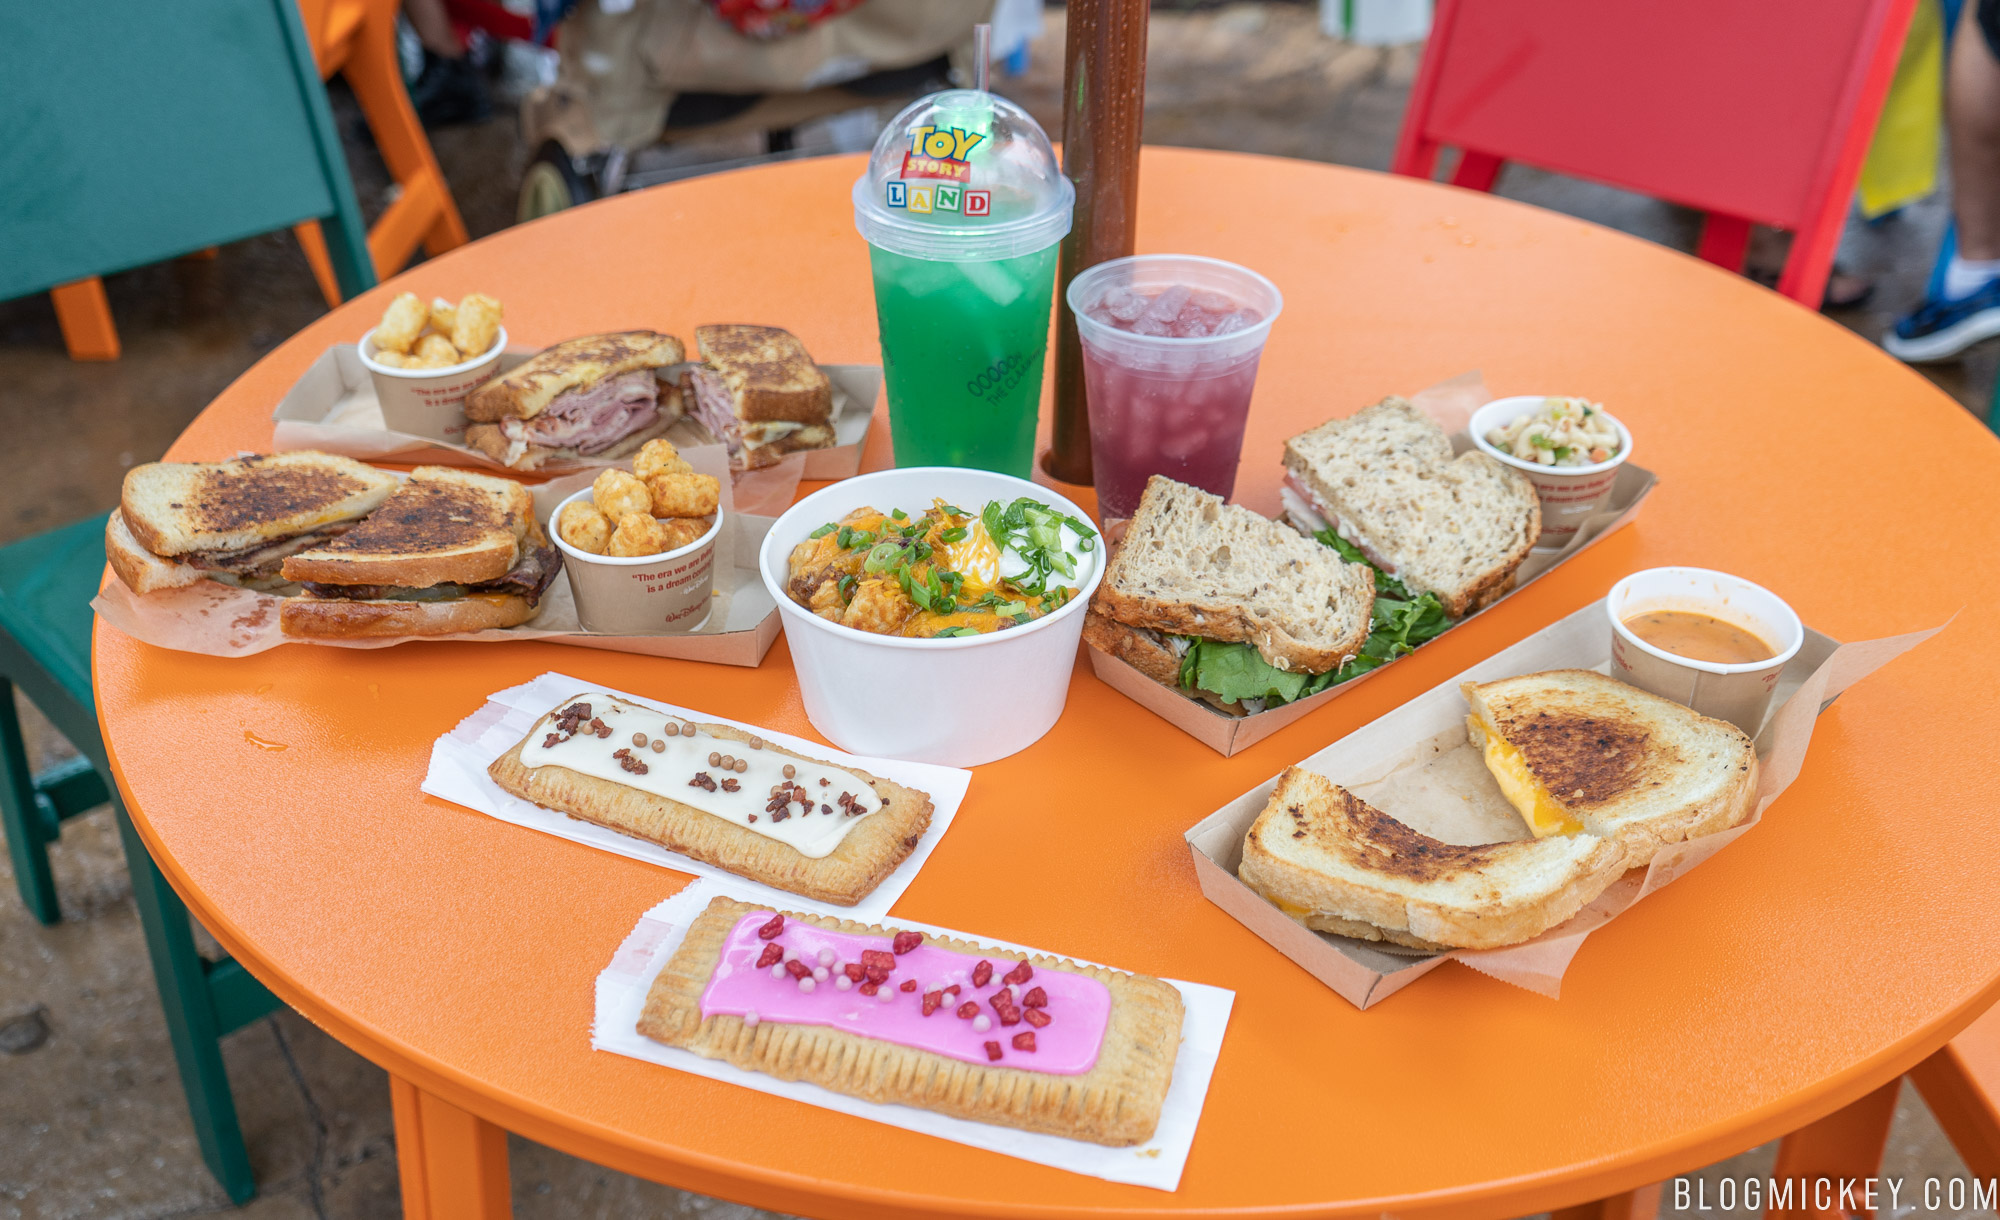 Lunch In A Box Review Breakfast Lunch And Dinner At Woody S Lunch Box In Toy